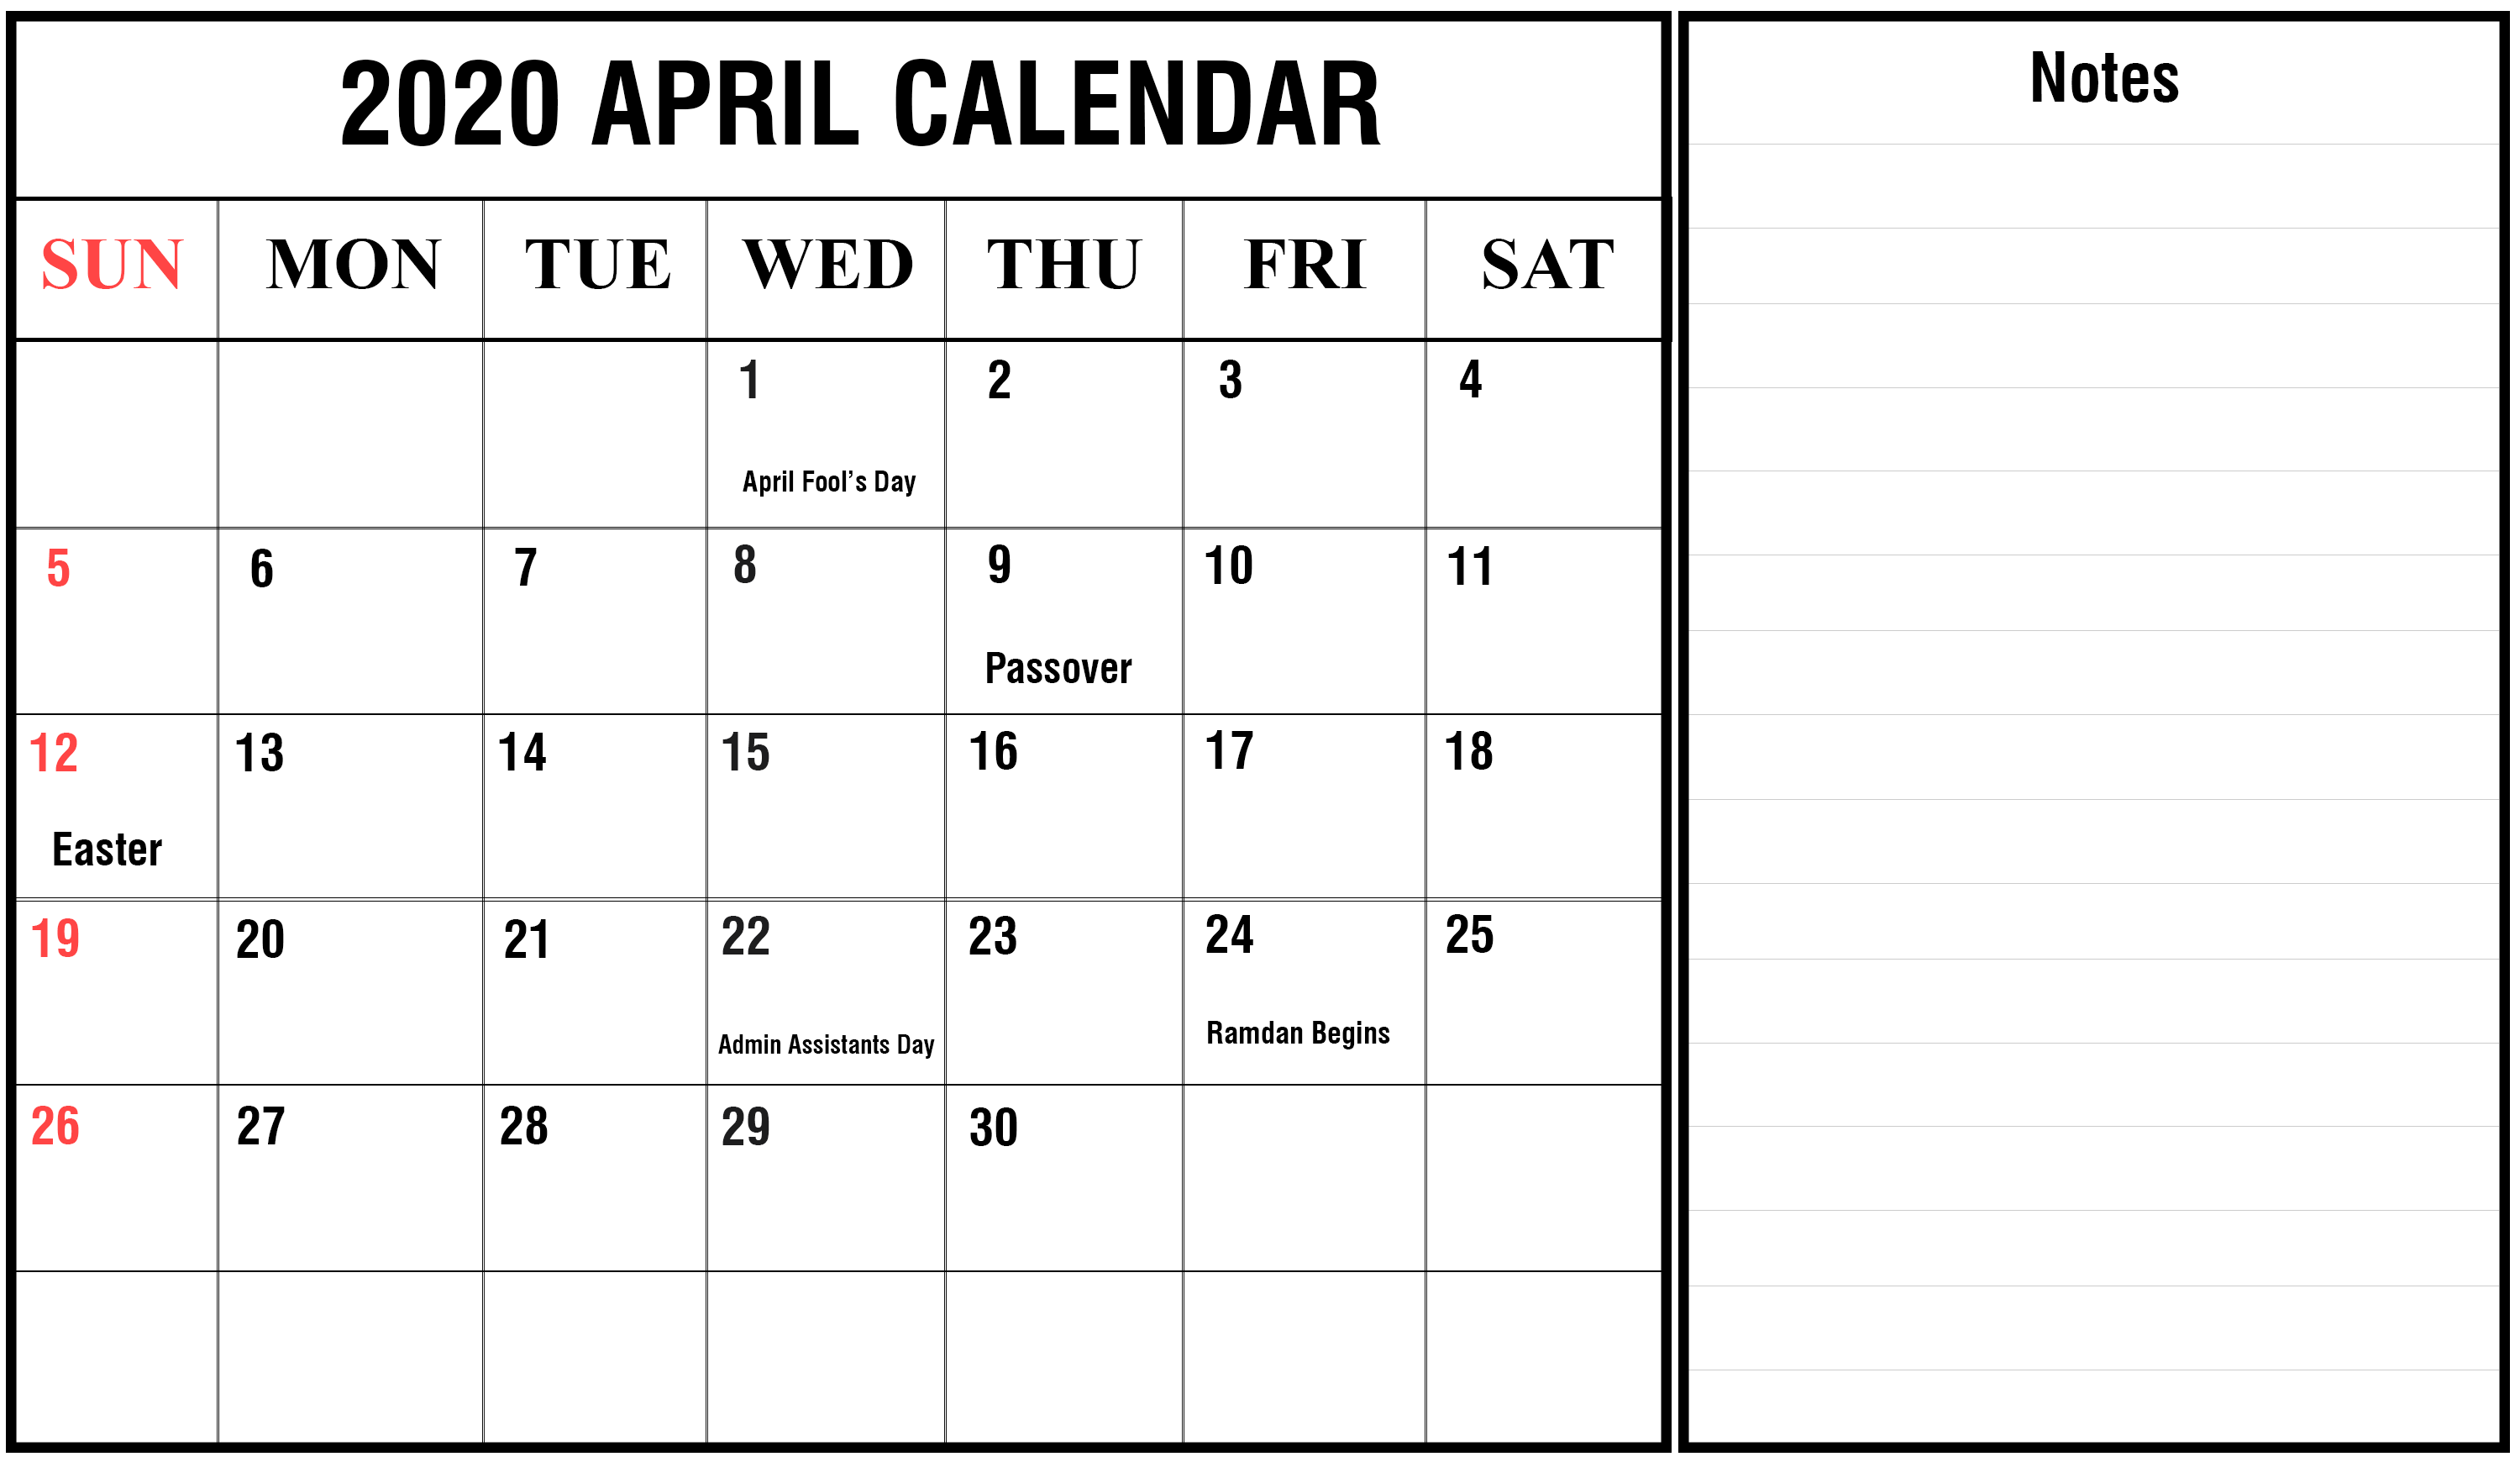 april 2020 fillable calendar notes